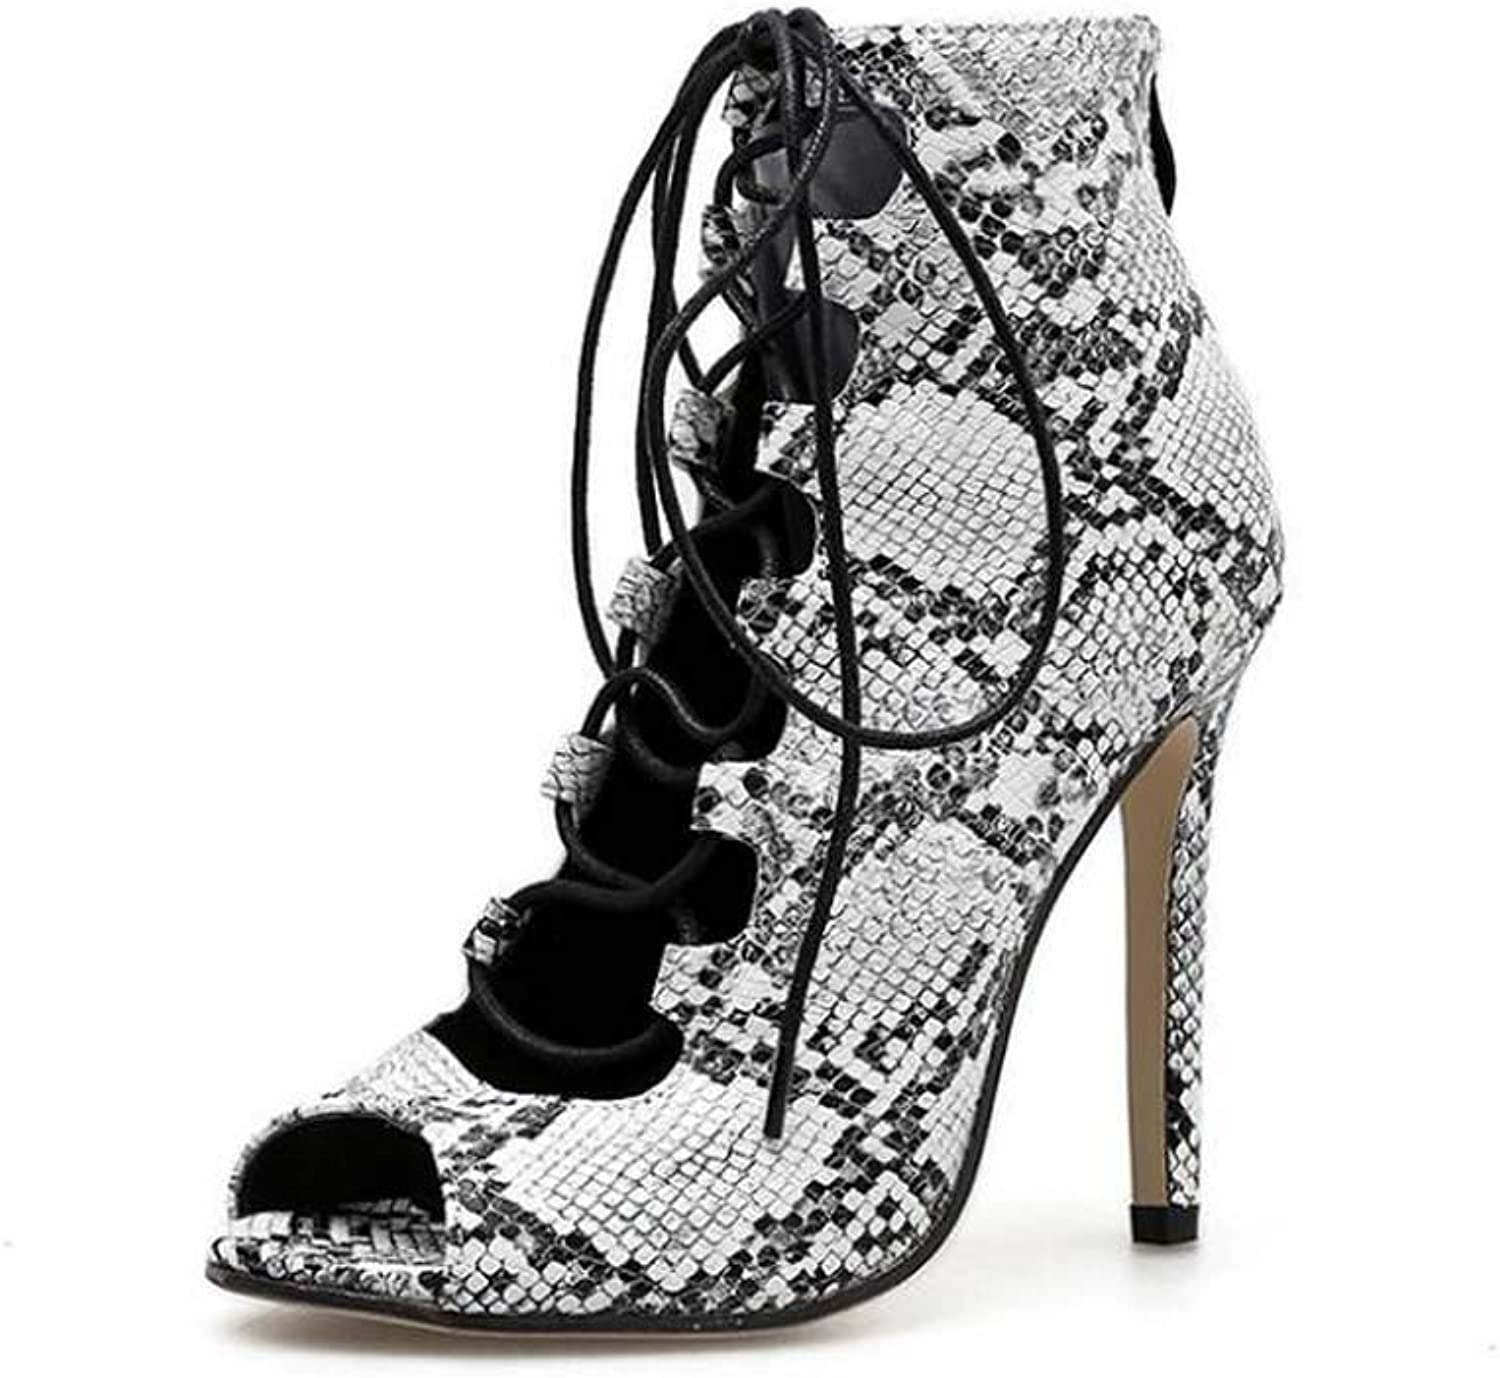 Peep Toe High Heel Cool Booite Cross Straps Ankle Bootie Women Sexy Snake Pattern 11.5Cm Stiletto Party Dress shoes EU Size 34-40